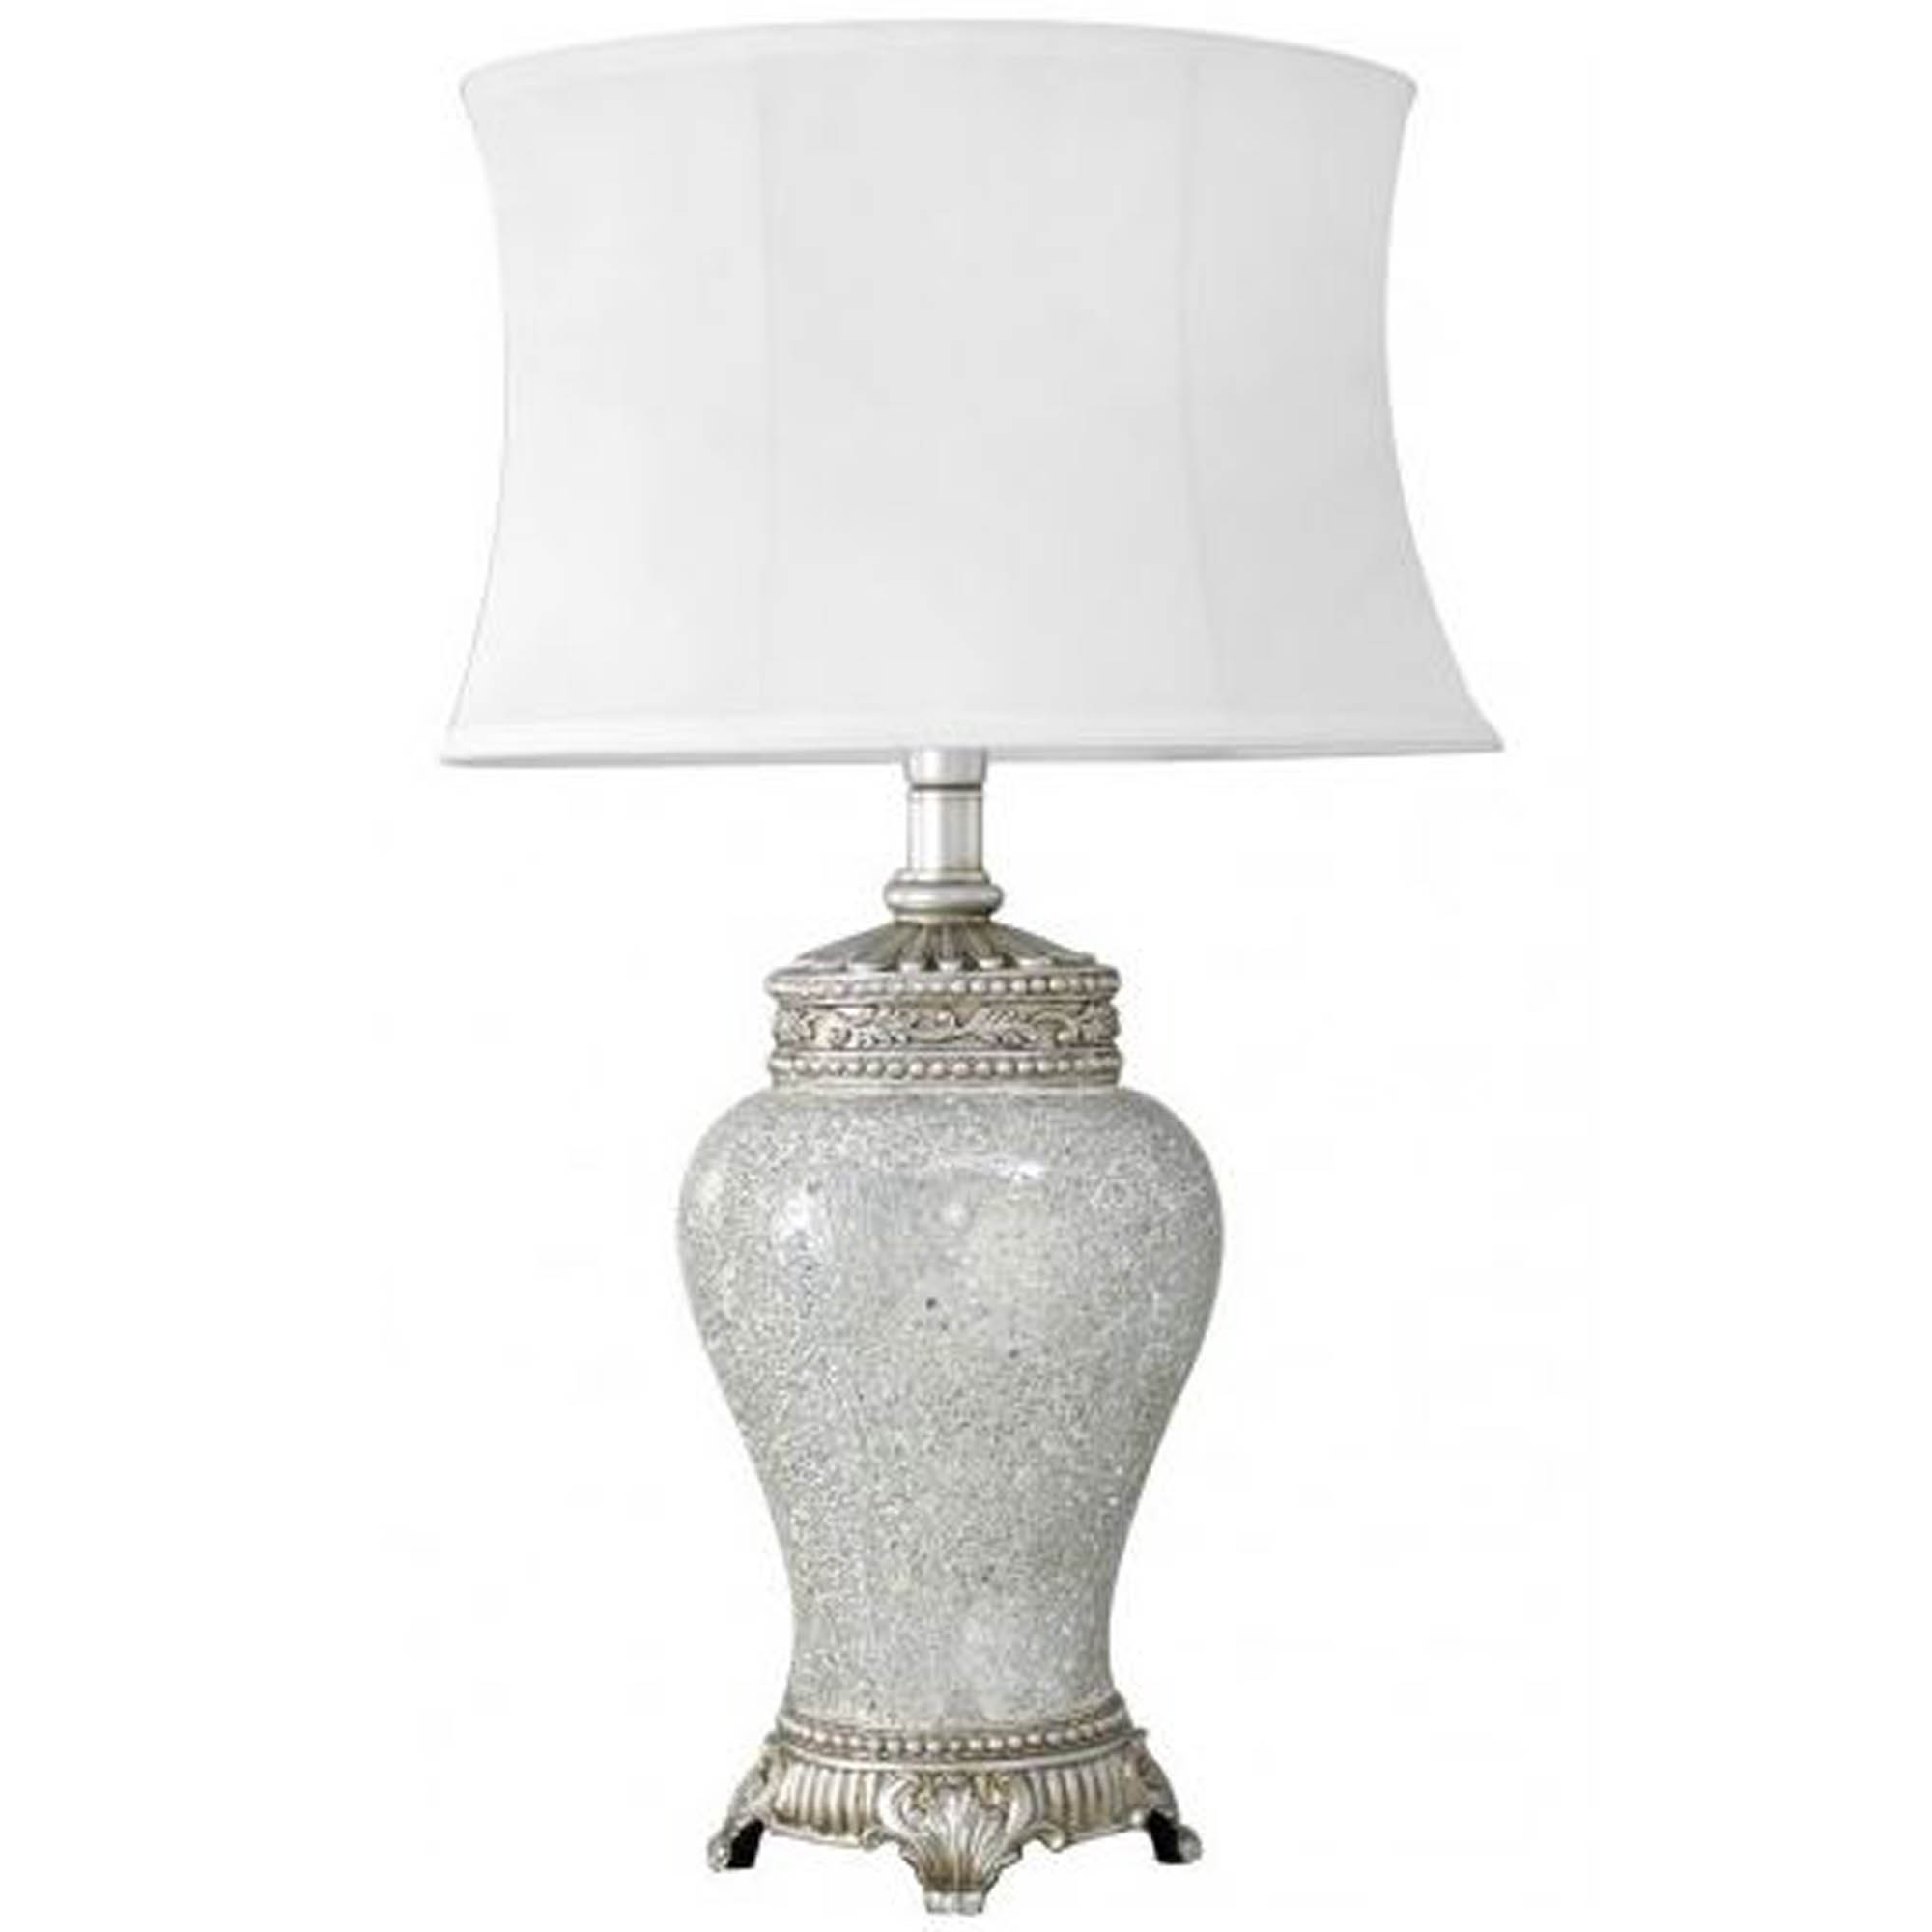 Antique French Style Silver Mosaic Table Lamp Lamps